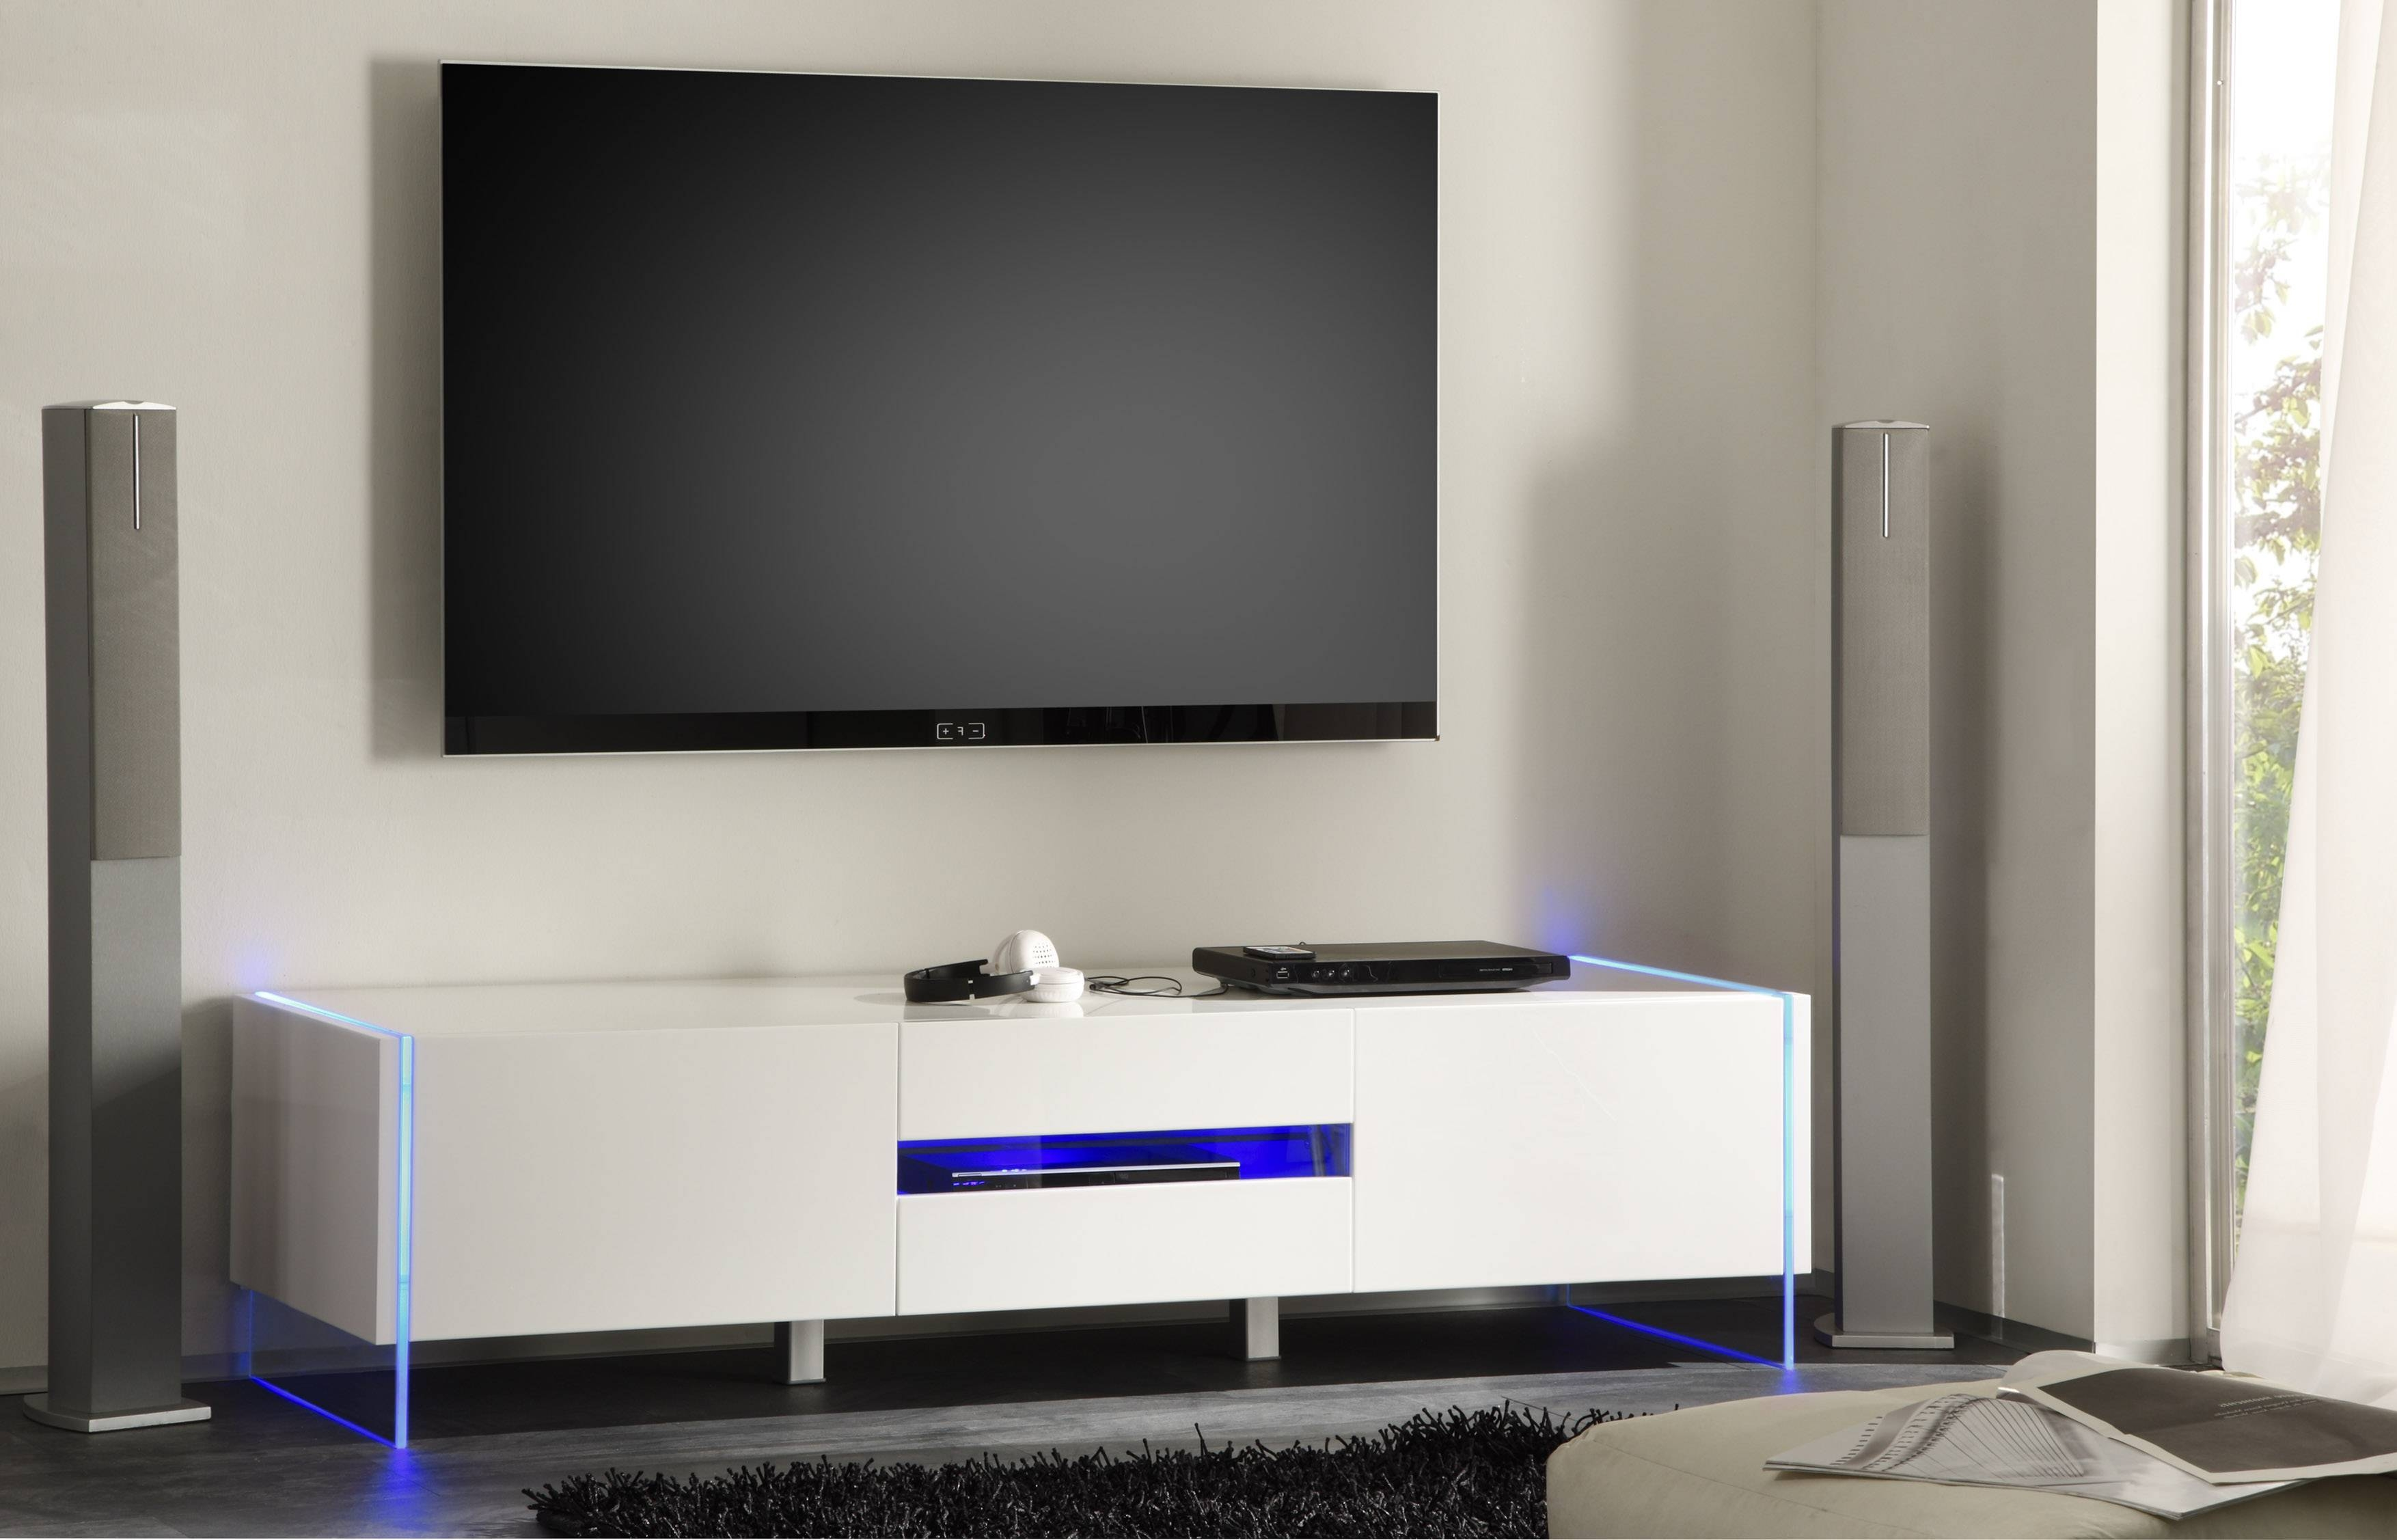 Chic Contemporary White Glossy Tv Stand Base With Led Seattle regarding Modern Contemporary Tv Stands (Image 6 of 15)